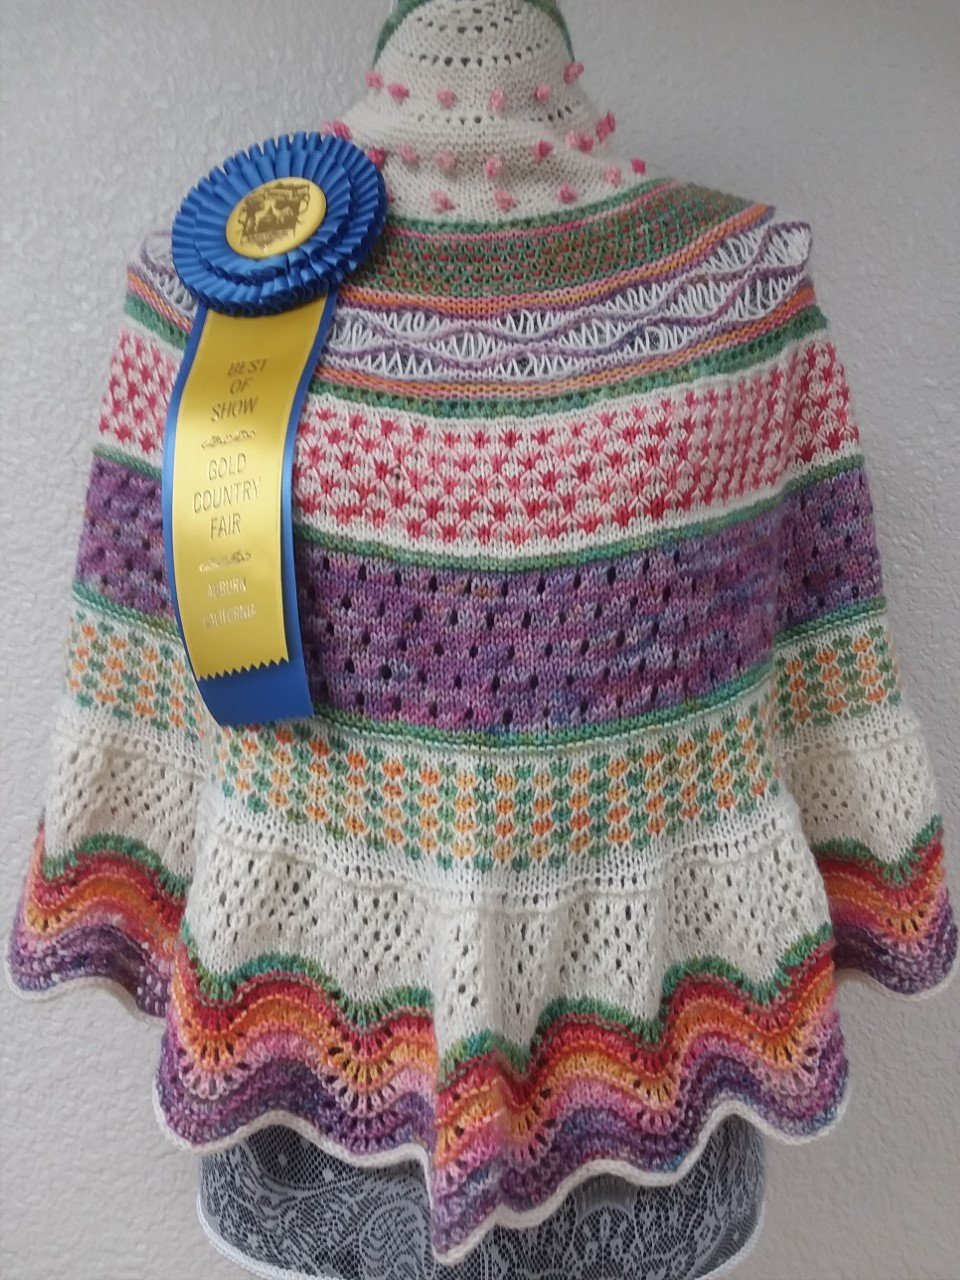 A Knitted Shawl